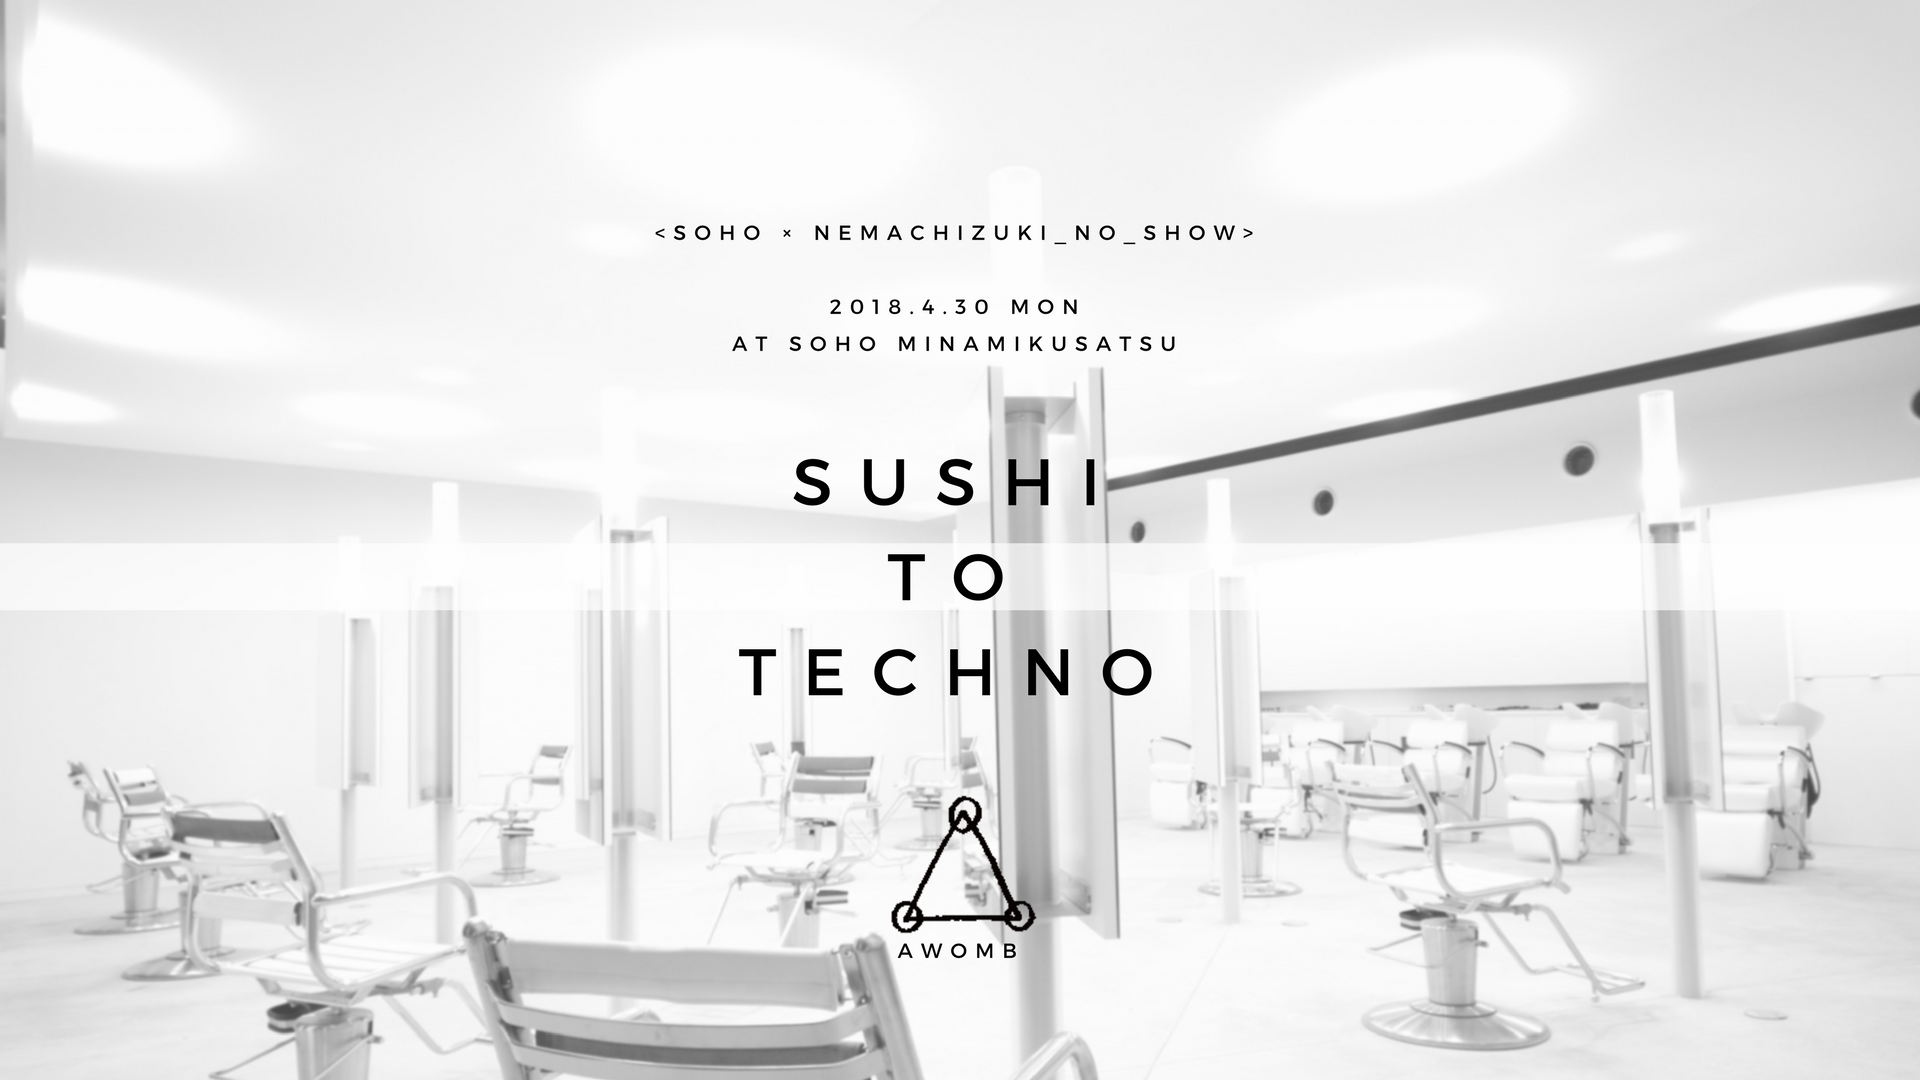 SUSHI TO TECHNO